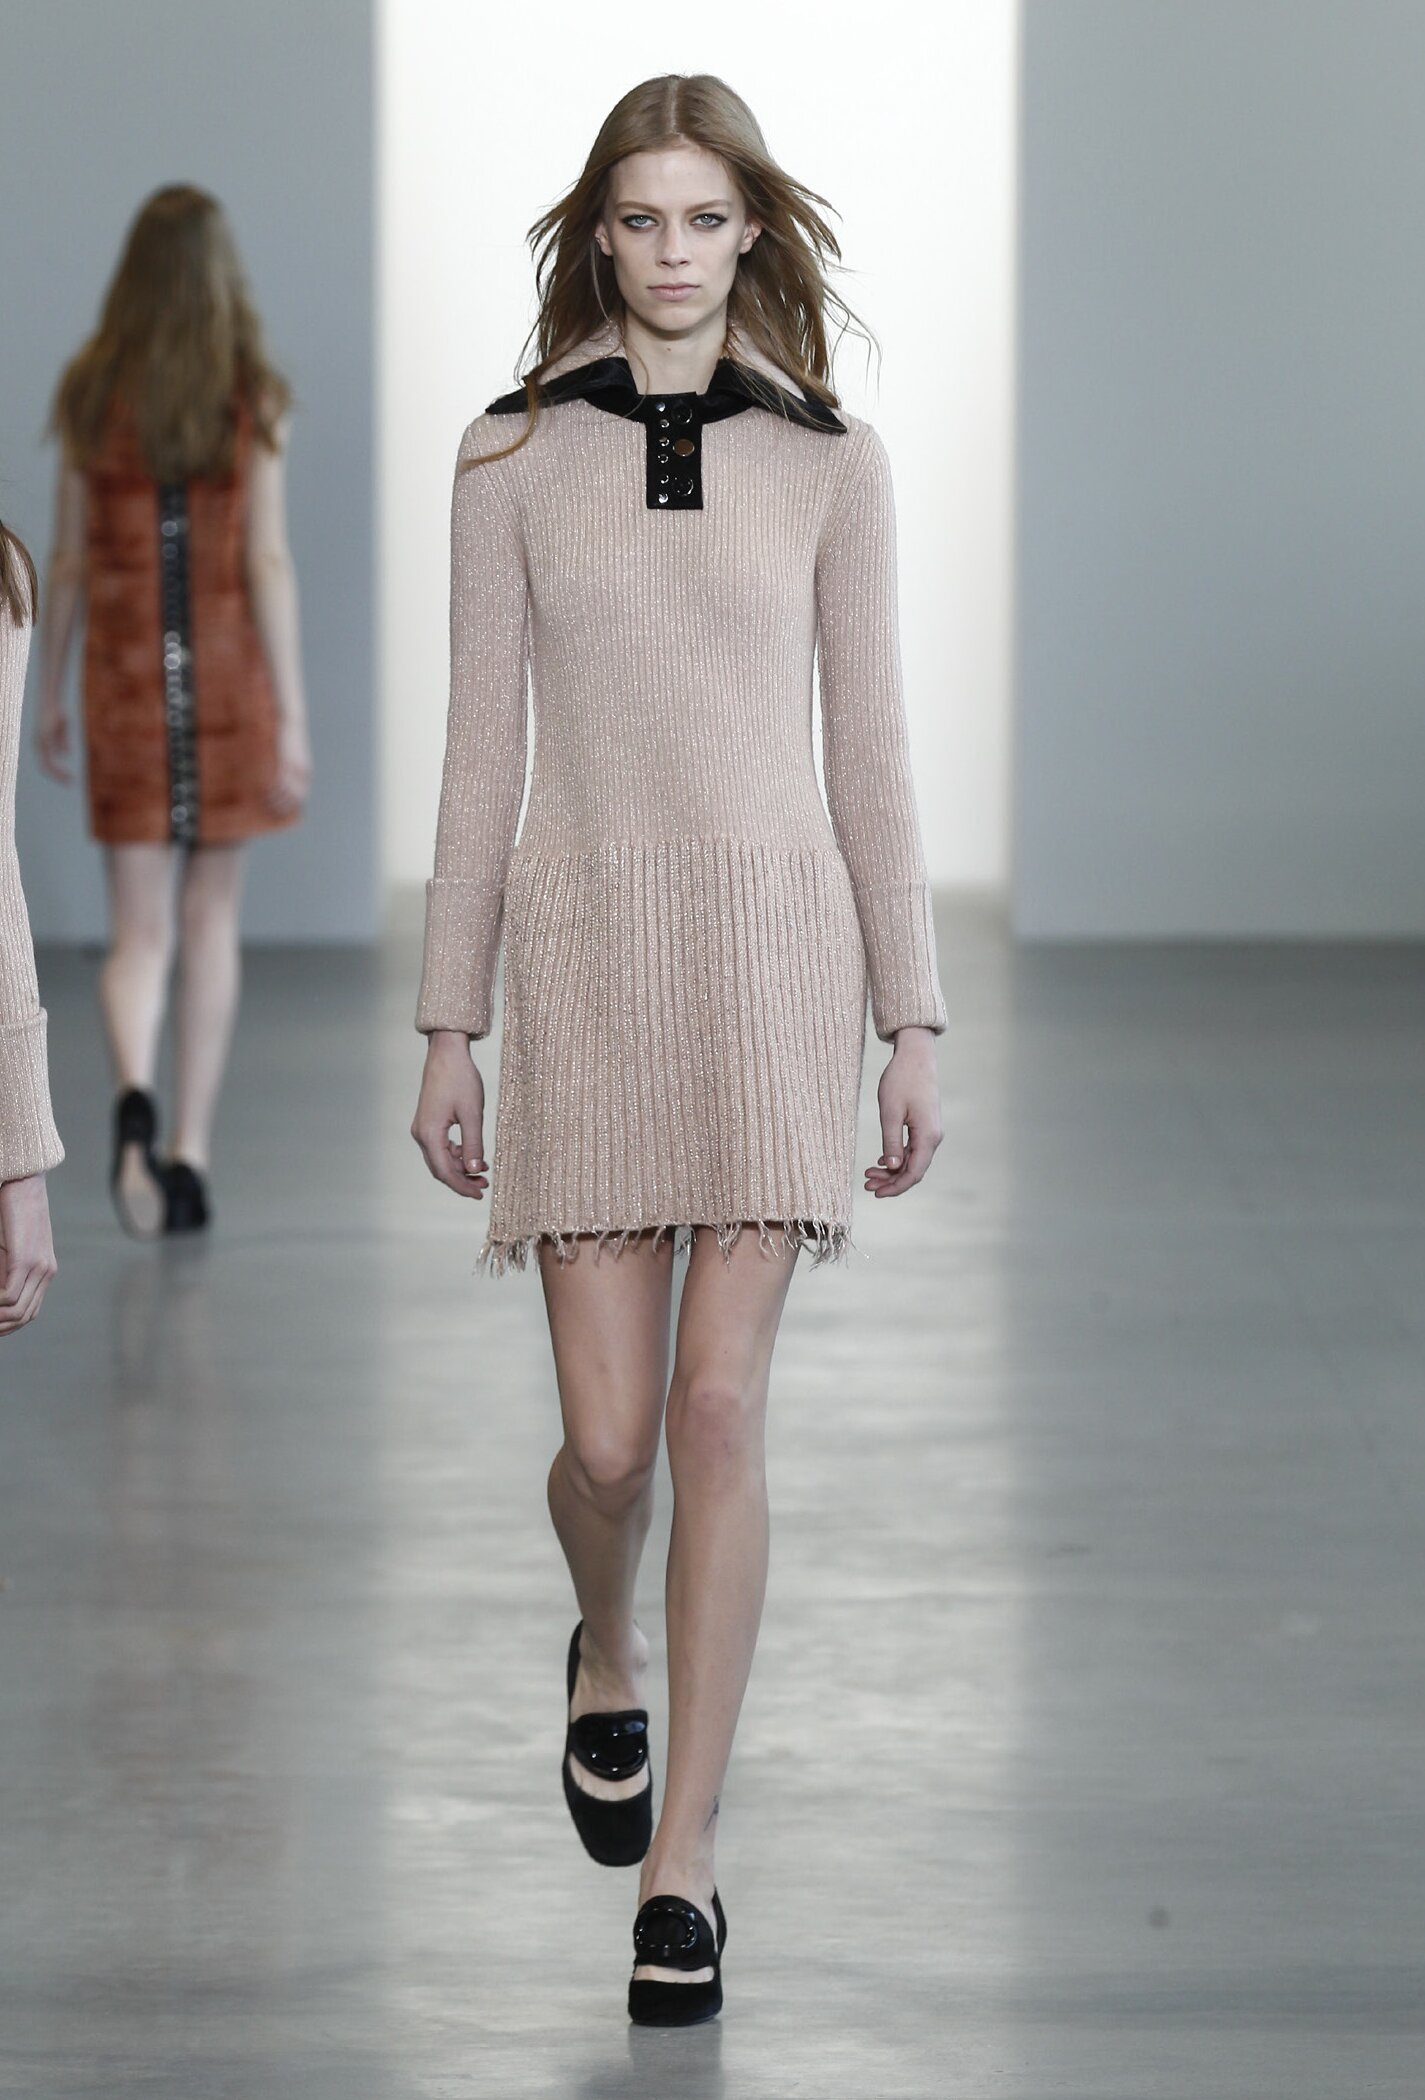 Calvin Klein Fall Winter 2015 16 Women's Collection New York Fashion Week Fashion Show